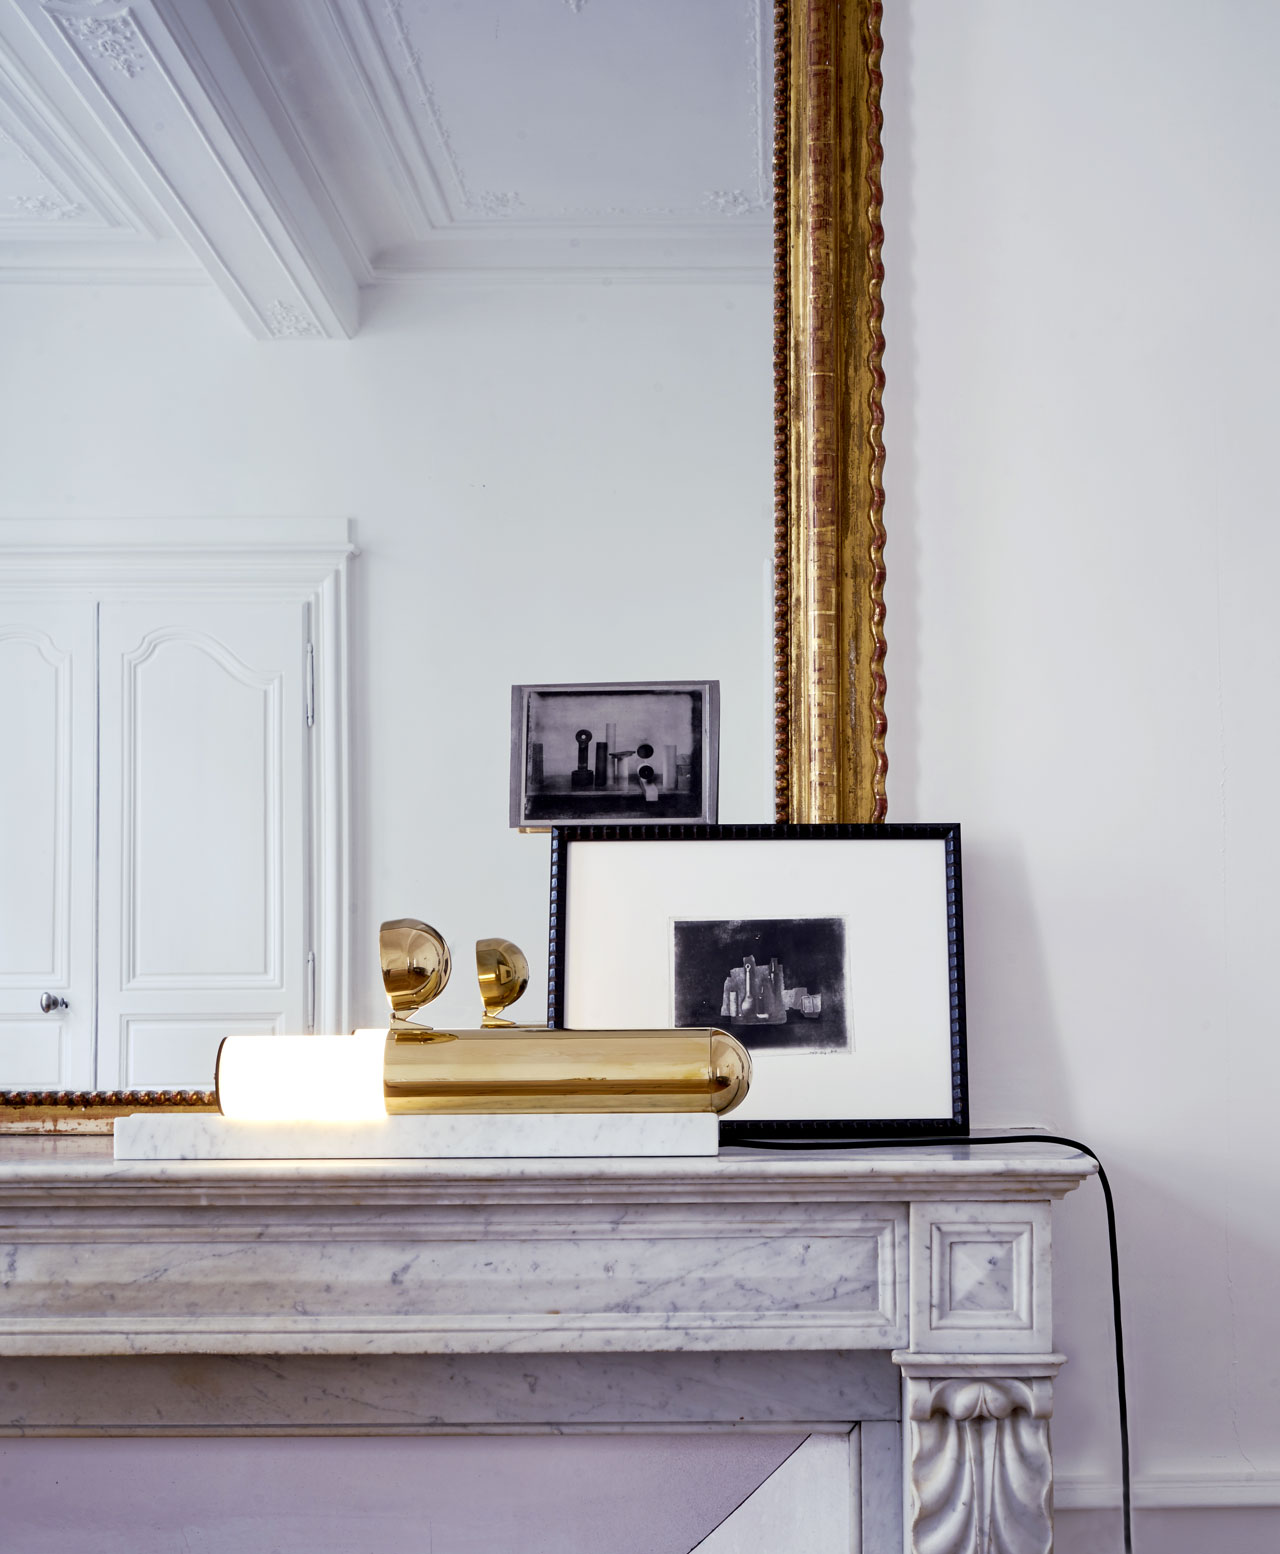 ISP table lamp by Ilia Potemine for DCW editions.